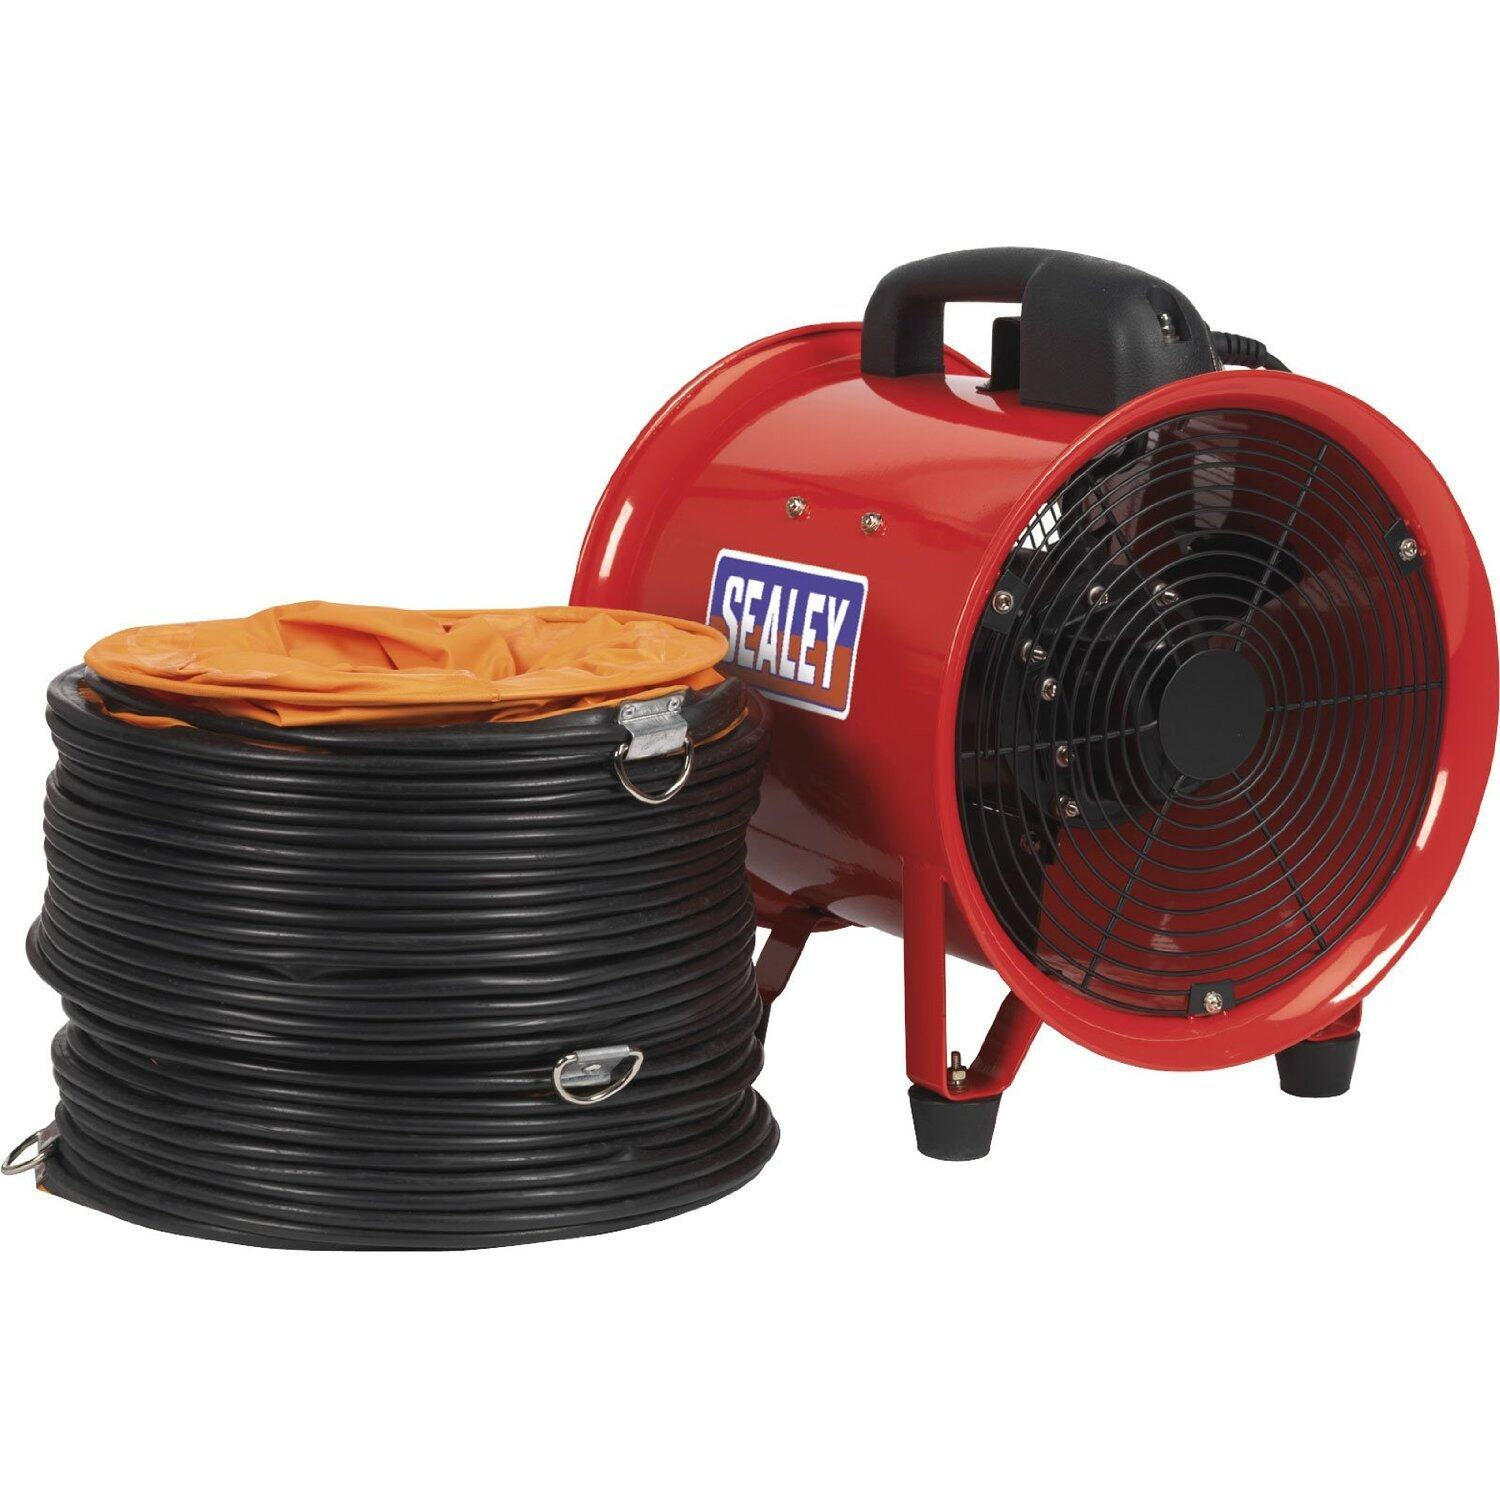 (Clearance) Sealey Portable Ventilator 200mm With 5 Mtr Ducting [Showroom Unit]